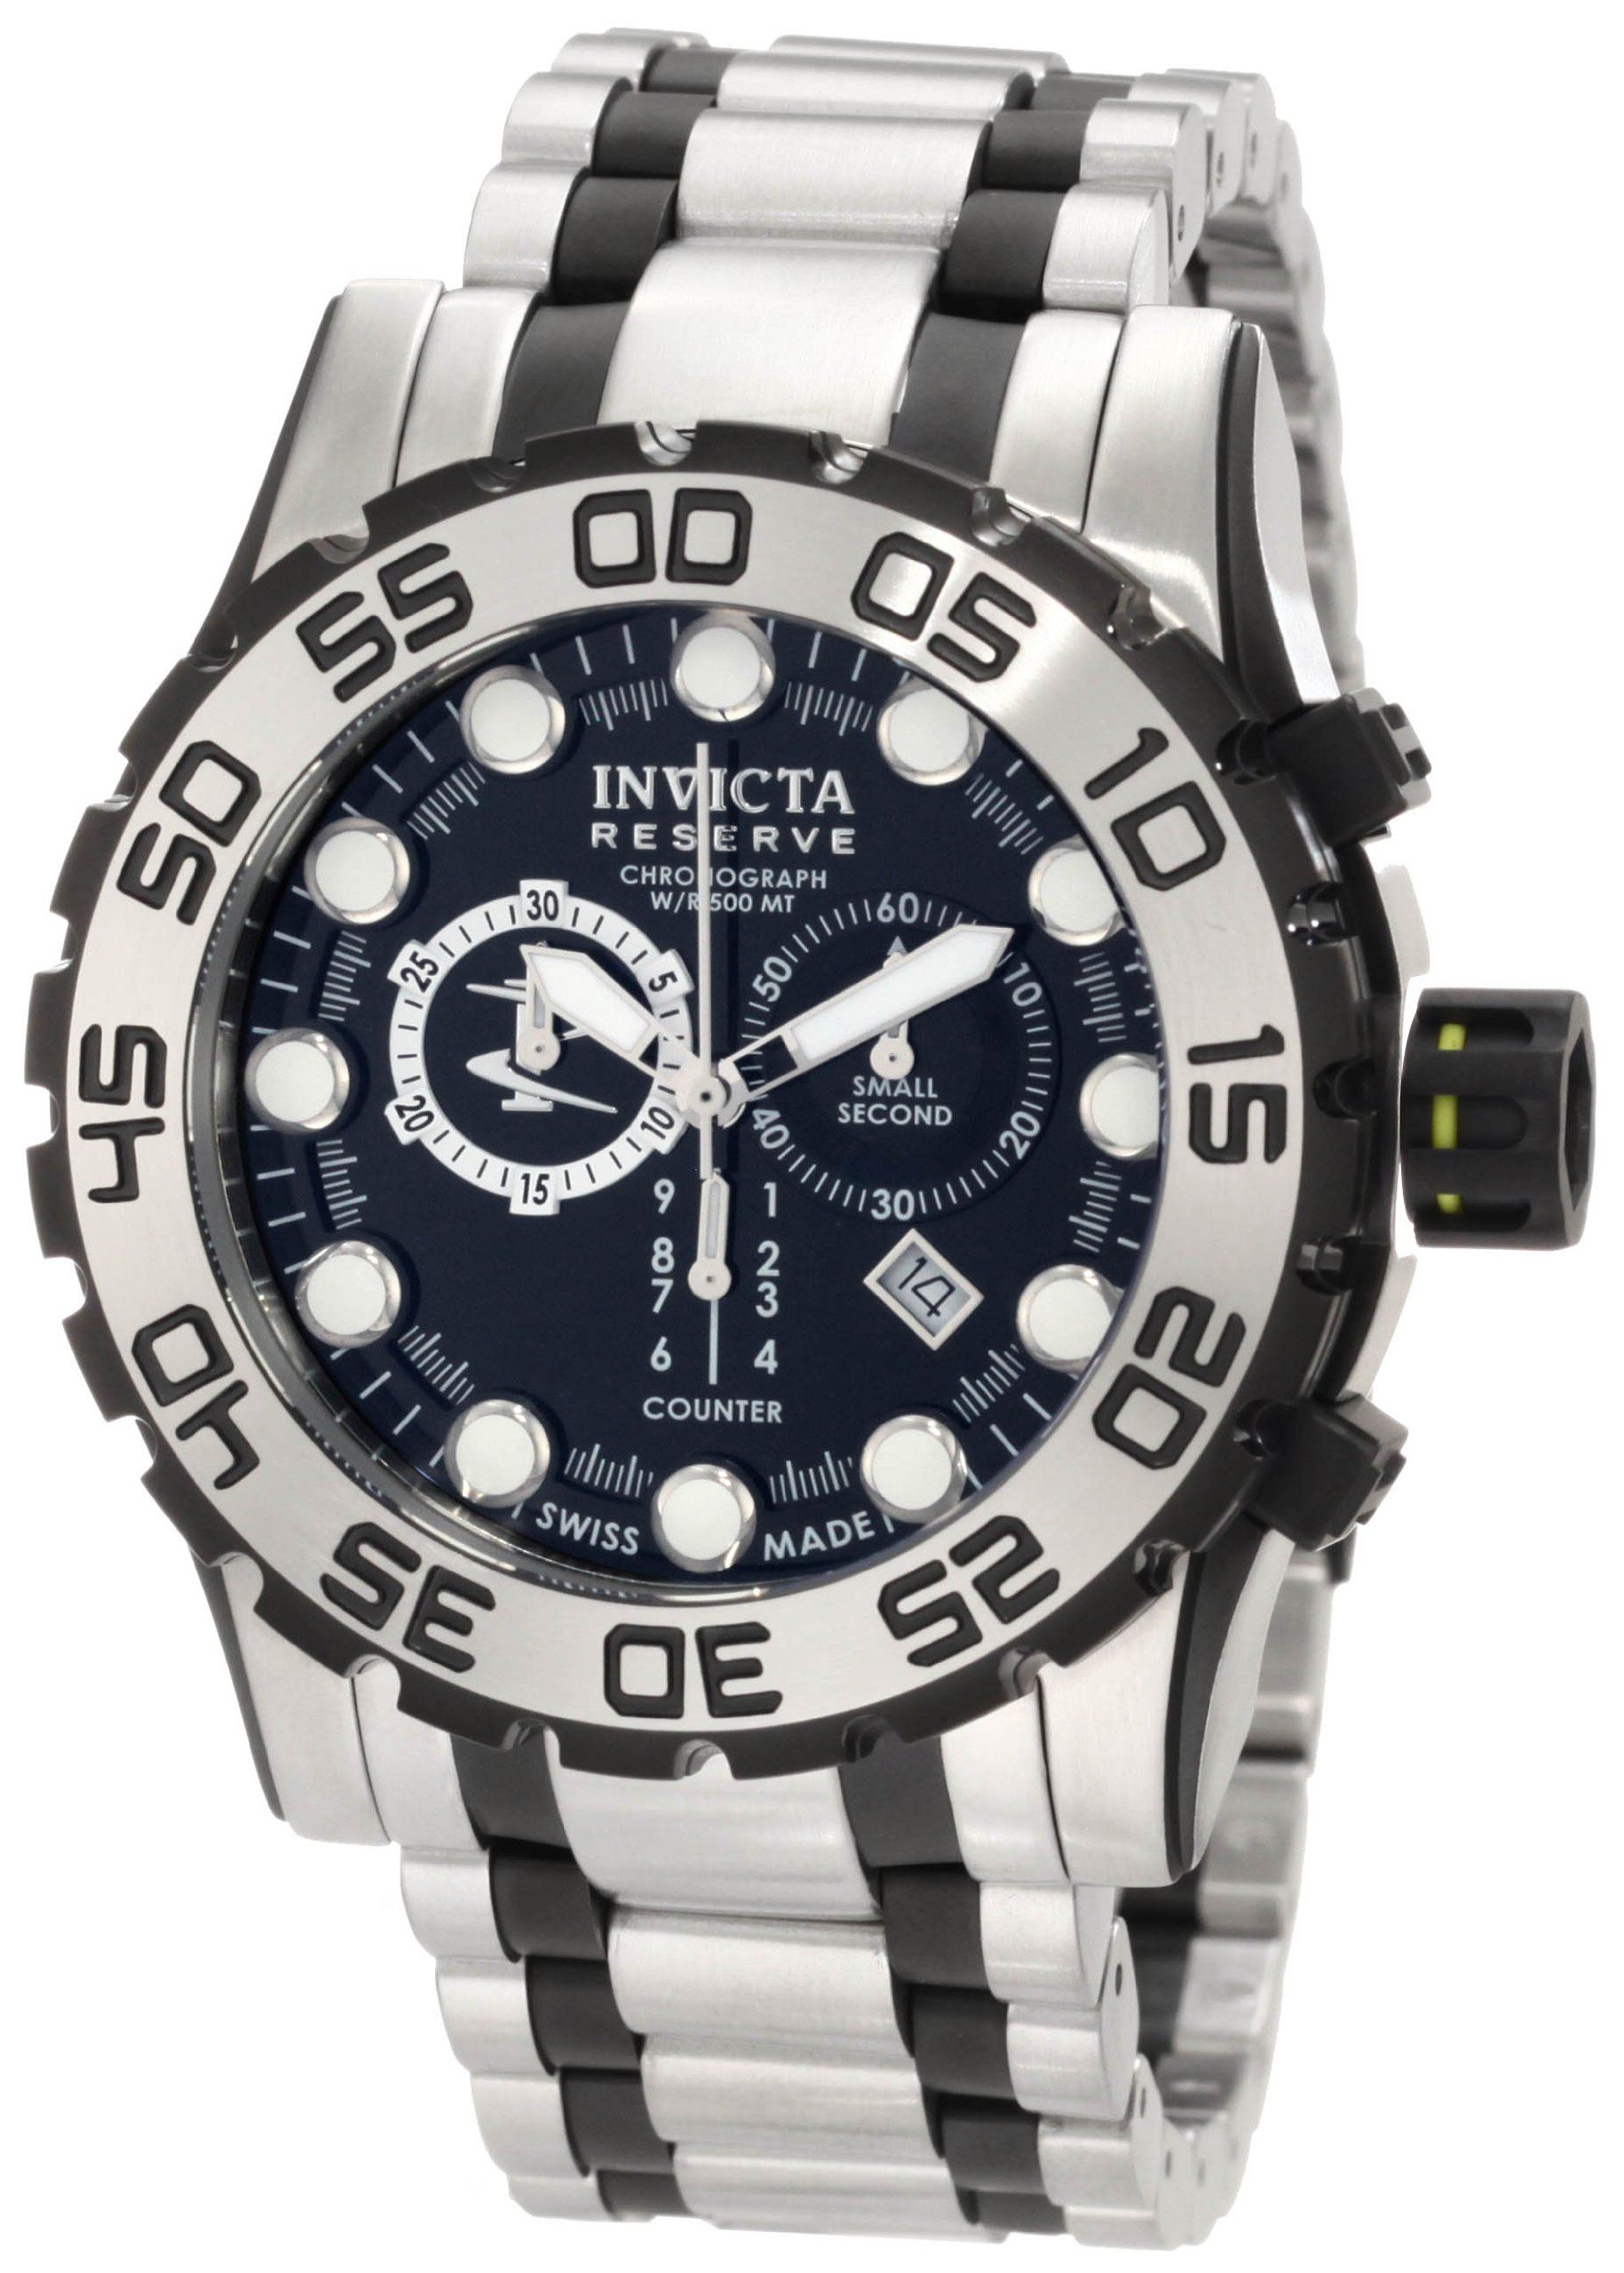 Invicta Men's 0814 Reserve Chronograph Black Dial Stainless Steel Watch by Invicta